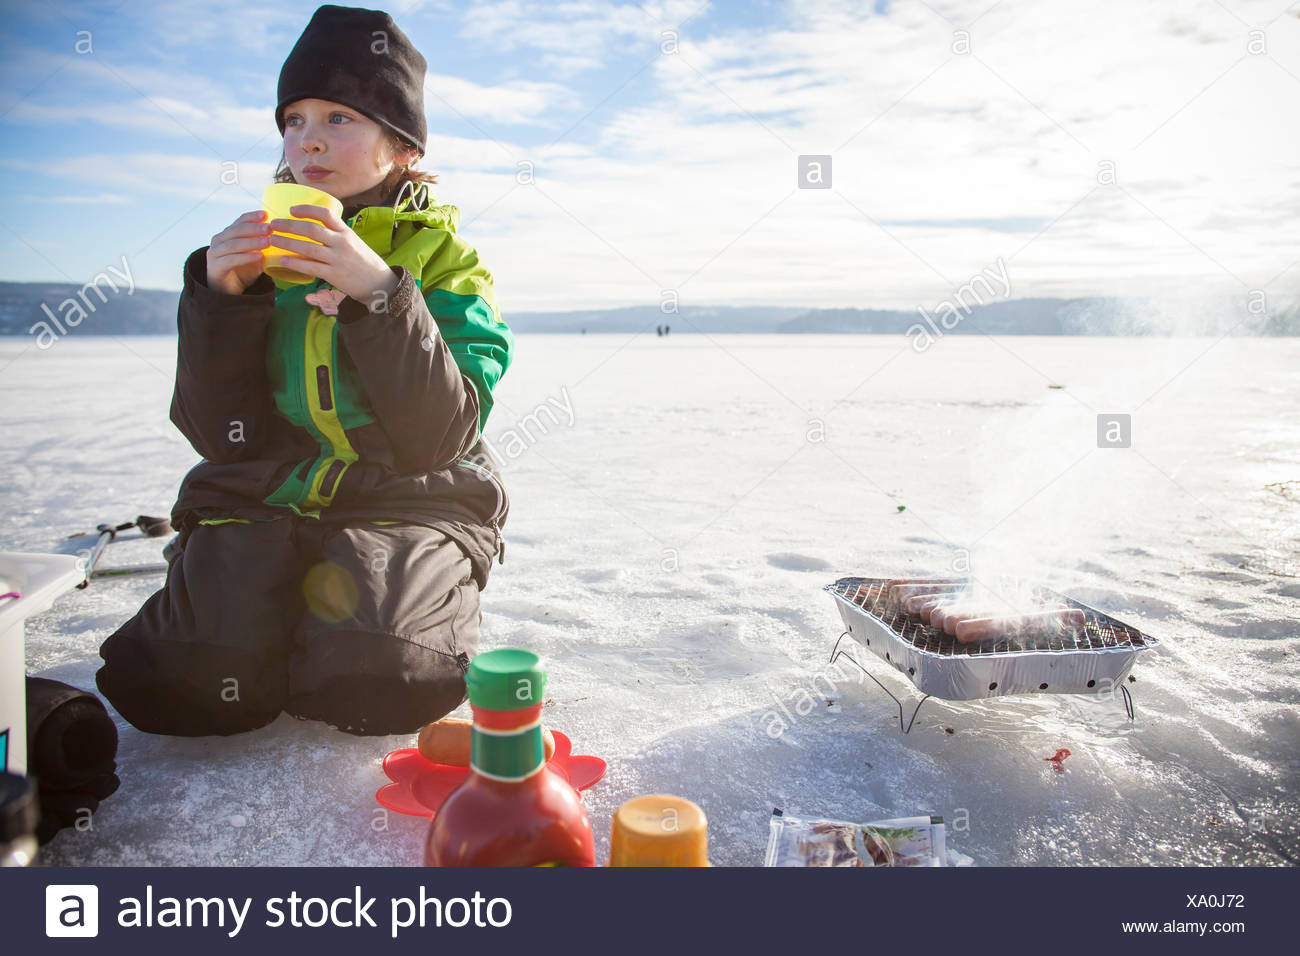 Boy (8-9) drinking tea outdoors - Stock Image